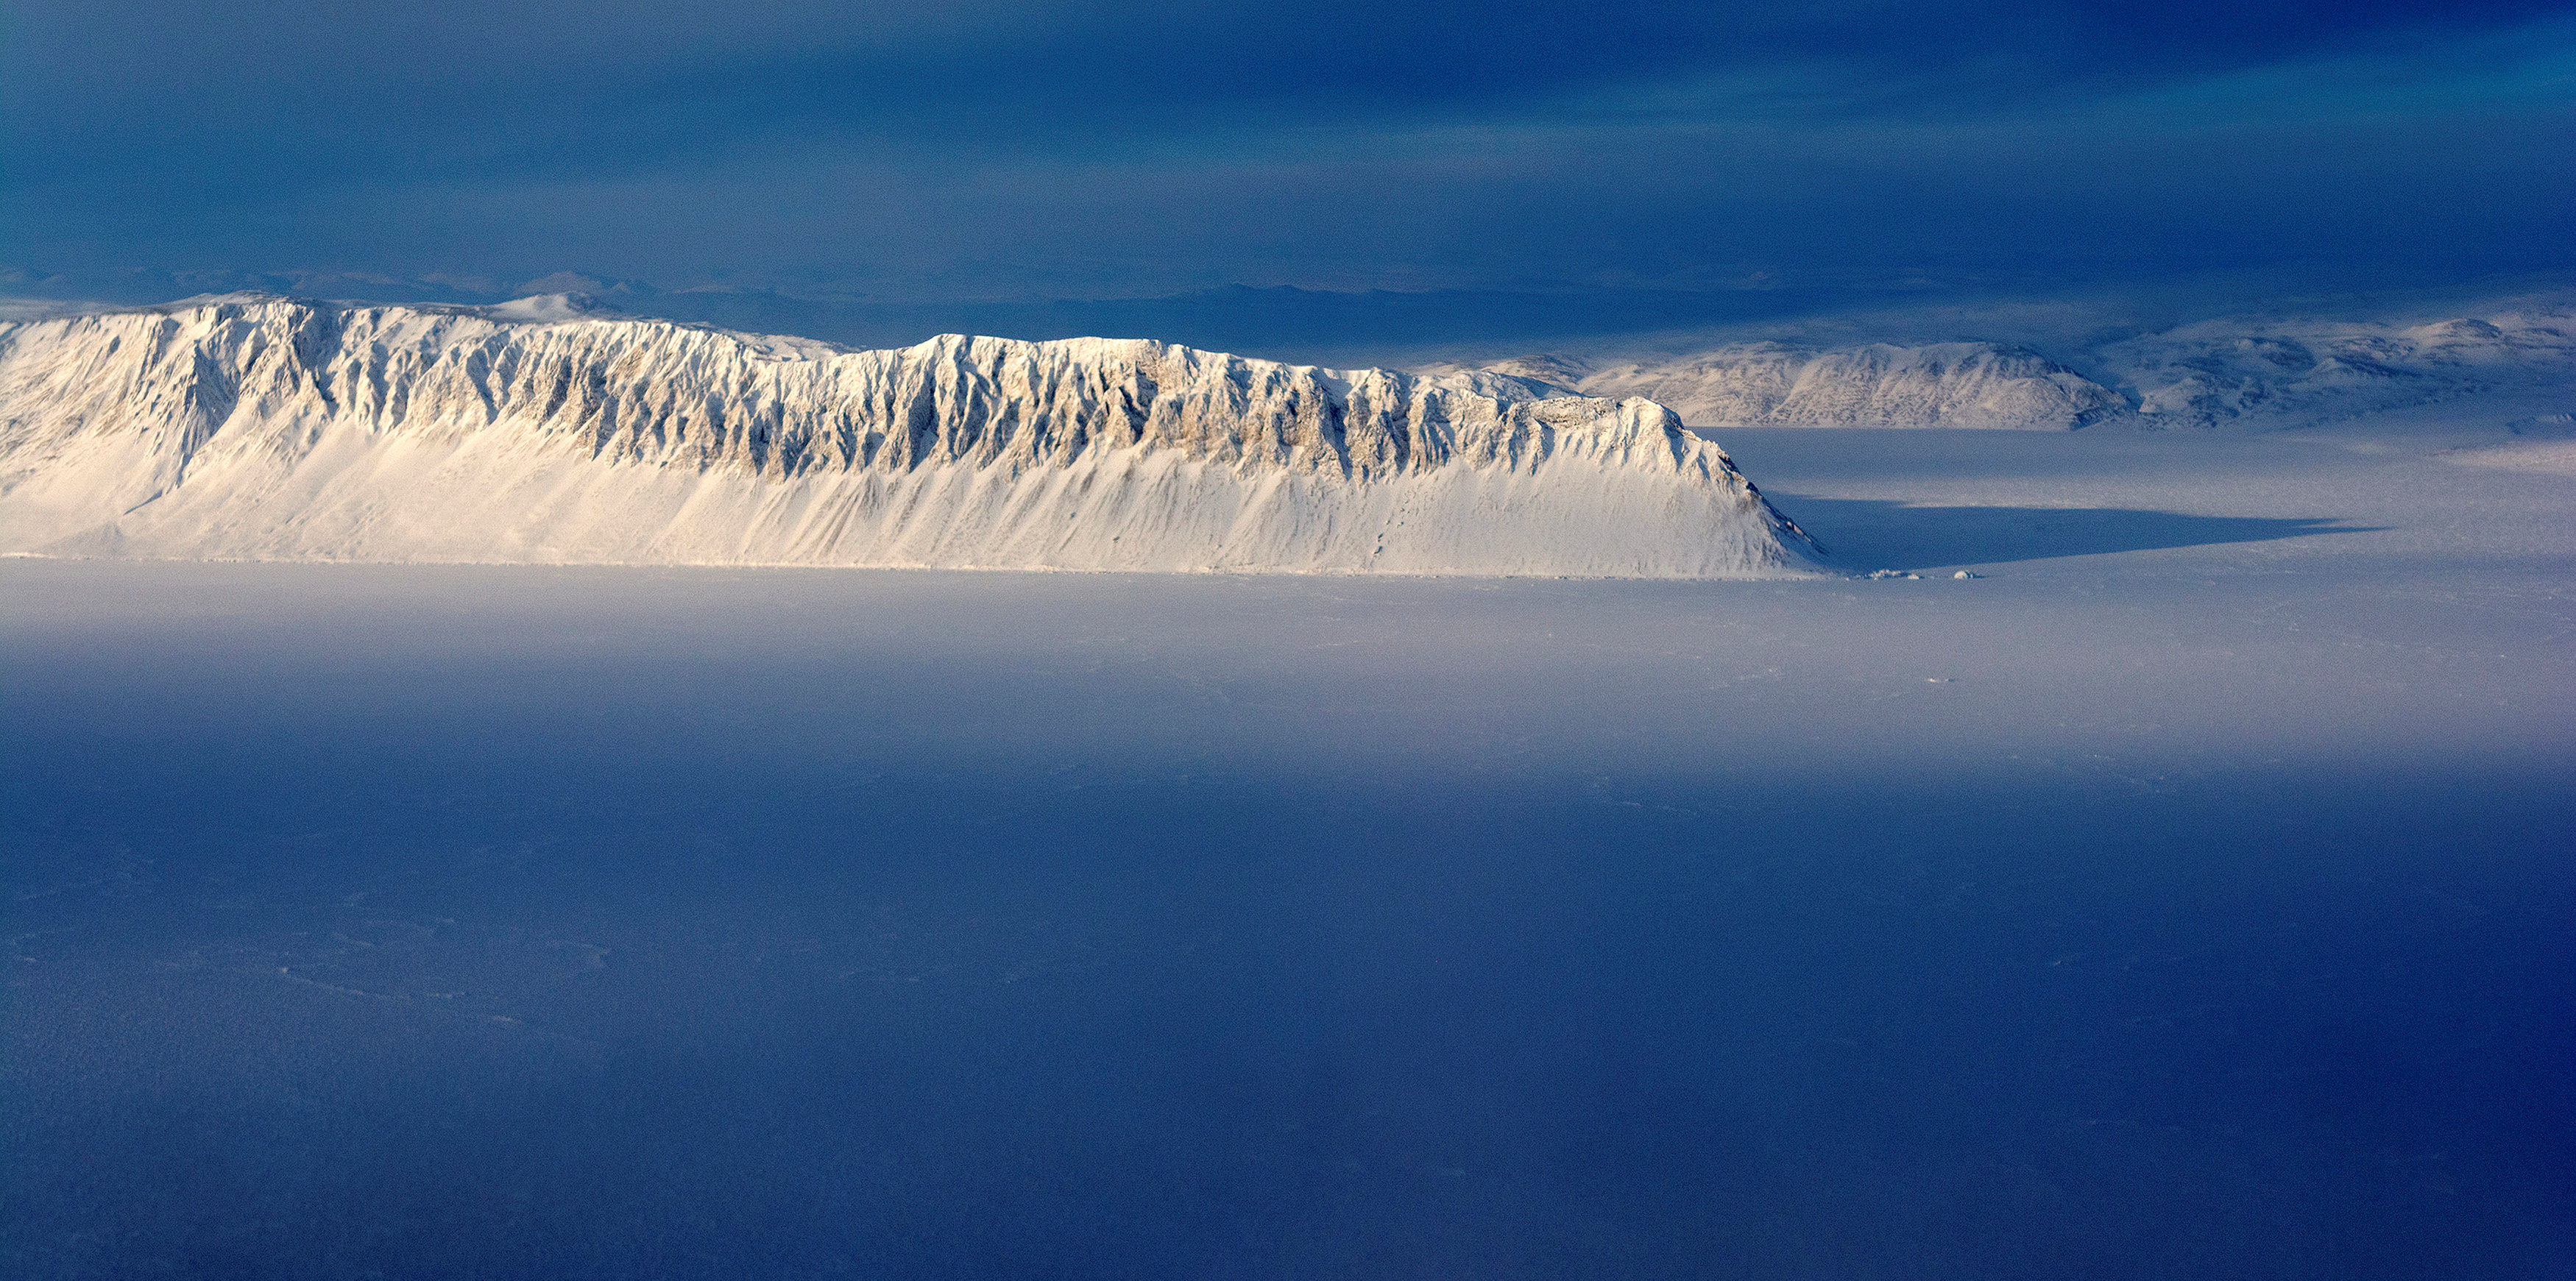 Arctic ice loss is driven by natural swings as well as human activity, study says